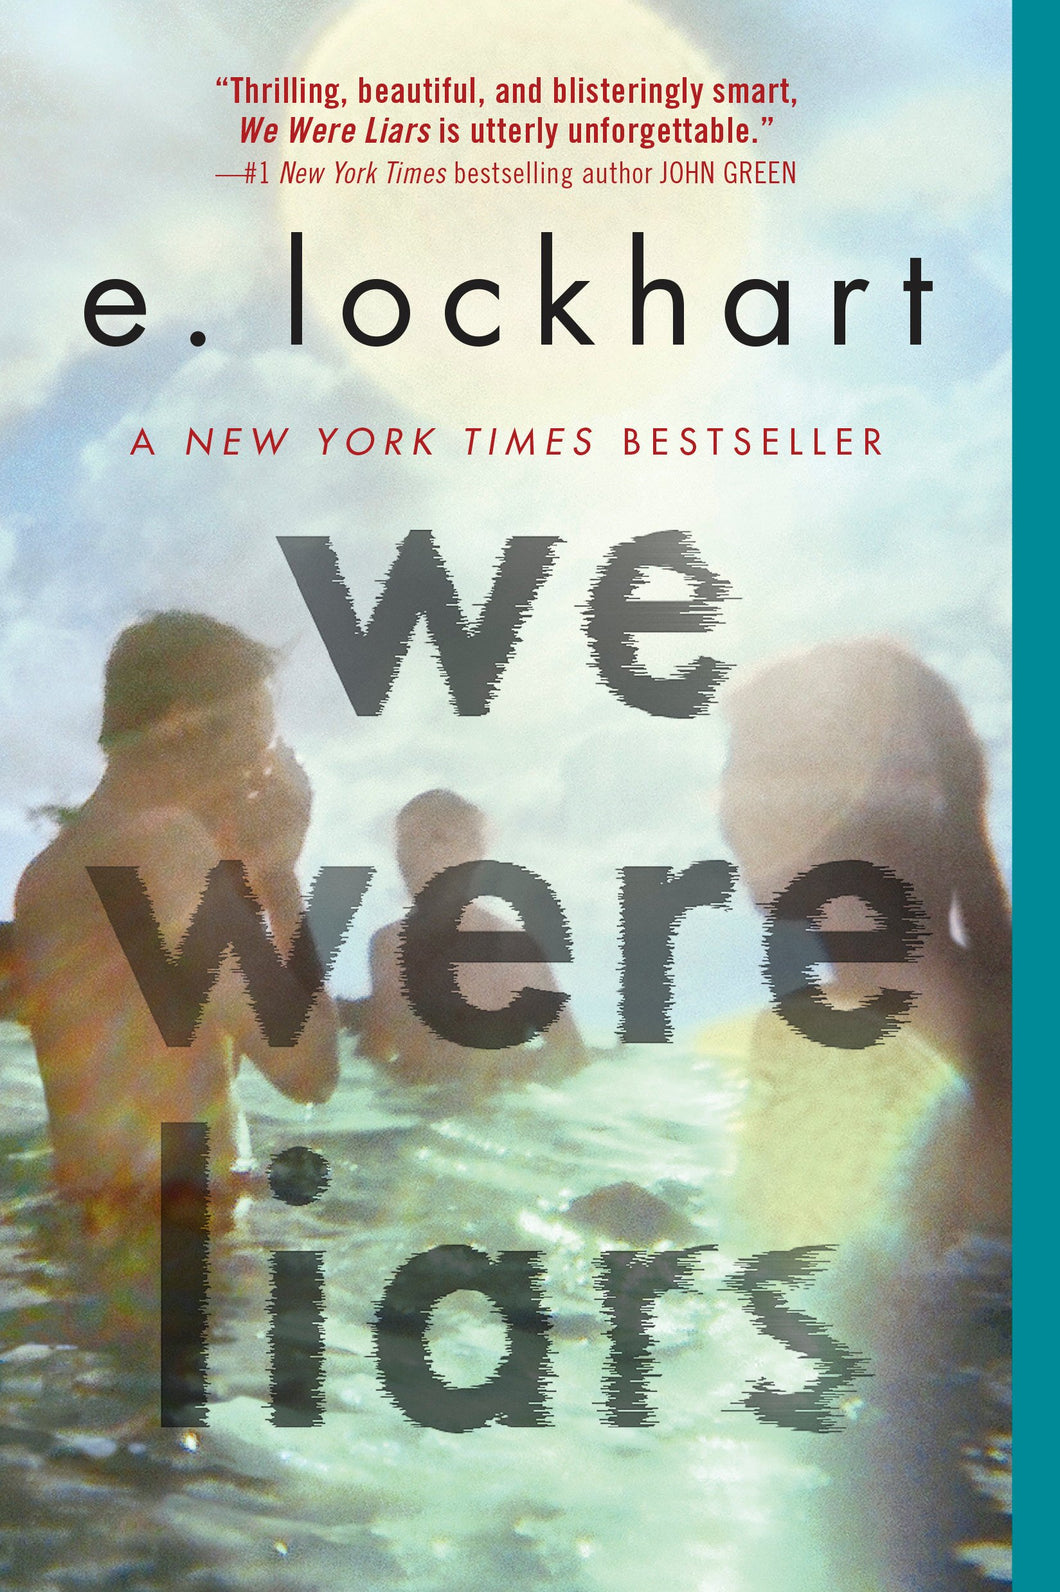 We Were Liars - Me Books Asia Store